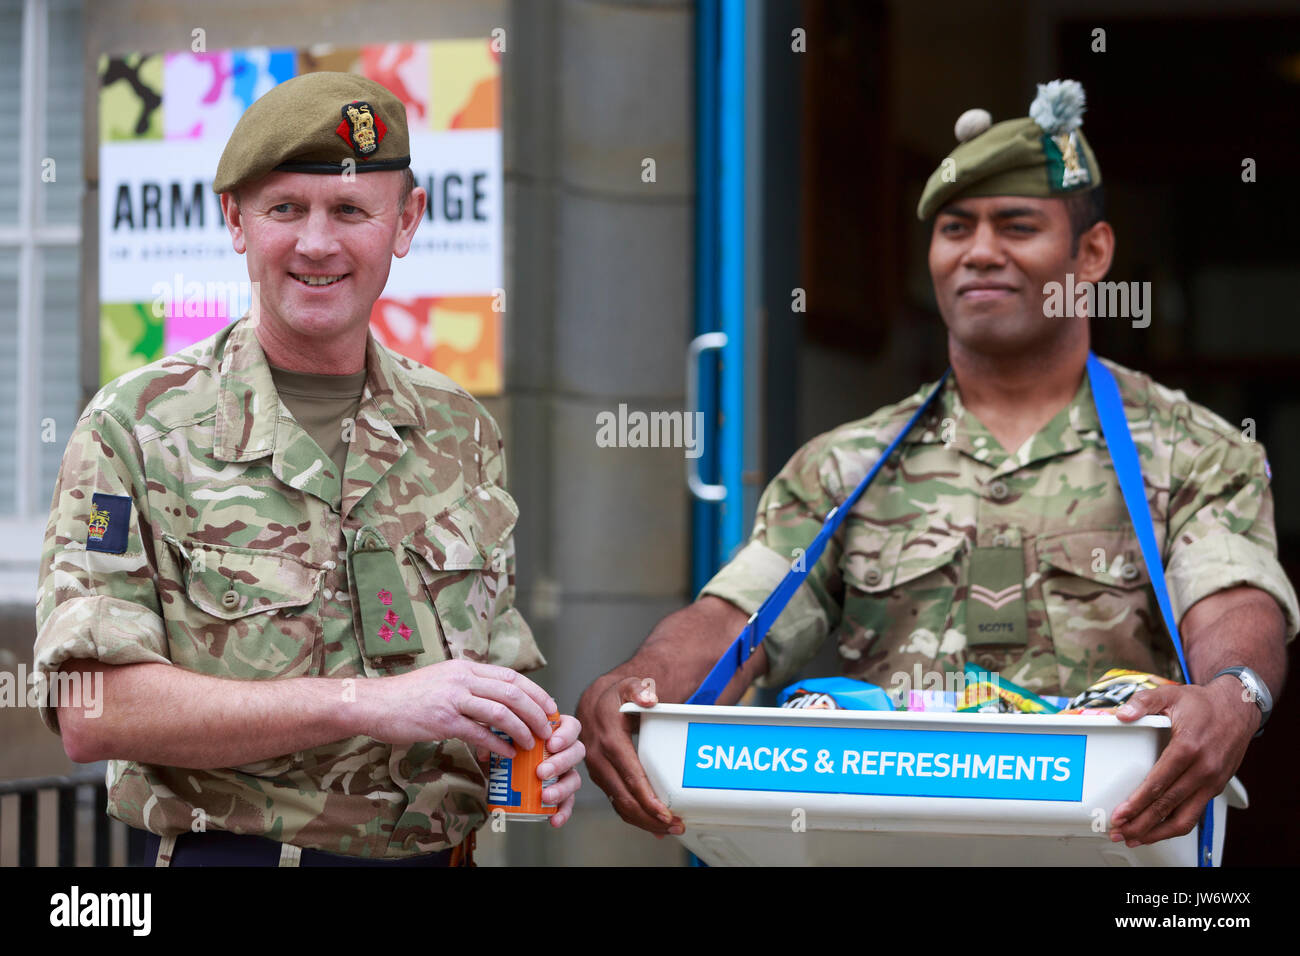 Edinburgh, Scotland 11th August. Head of the Army in Scotland Welcomes Performances for New Fringe Venue. (Venue 210) Brigadier Gary Deakin Welcomed performers to the history Hepburn House for the opening of the Army's first ever Edinburgh Festival Fringe Venue. Edinburgh. Pictured Brigadier Gary Deakin. Pako Mera/Alamy Live News - Stock Image